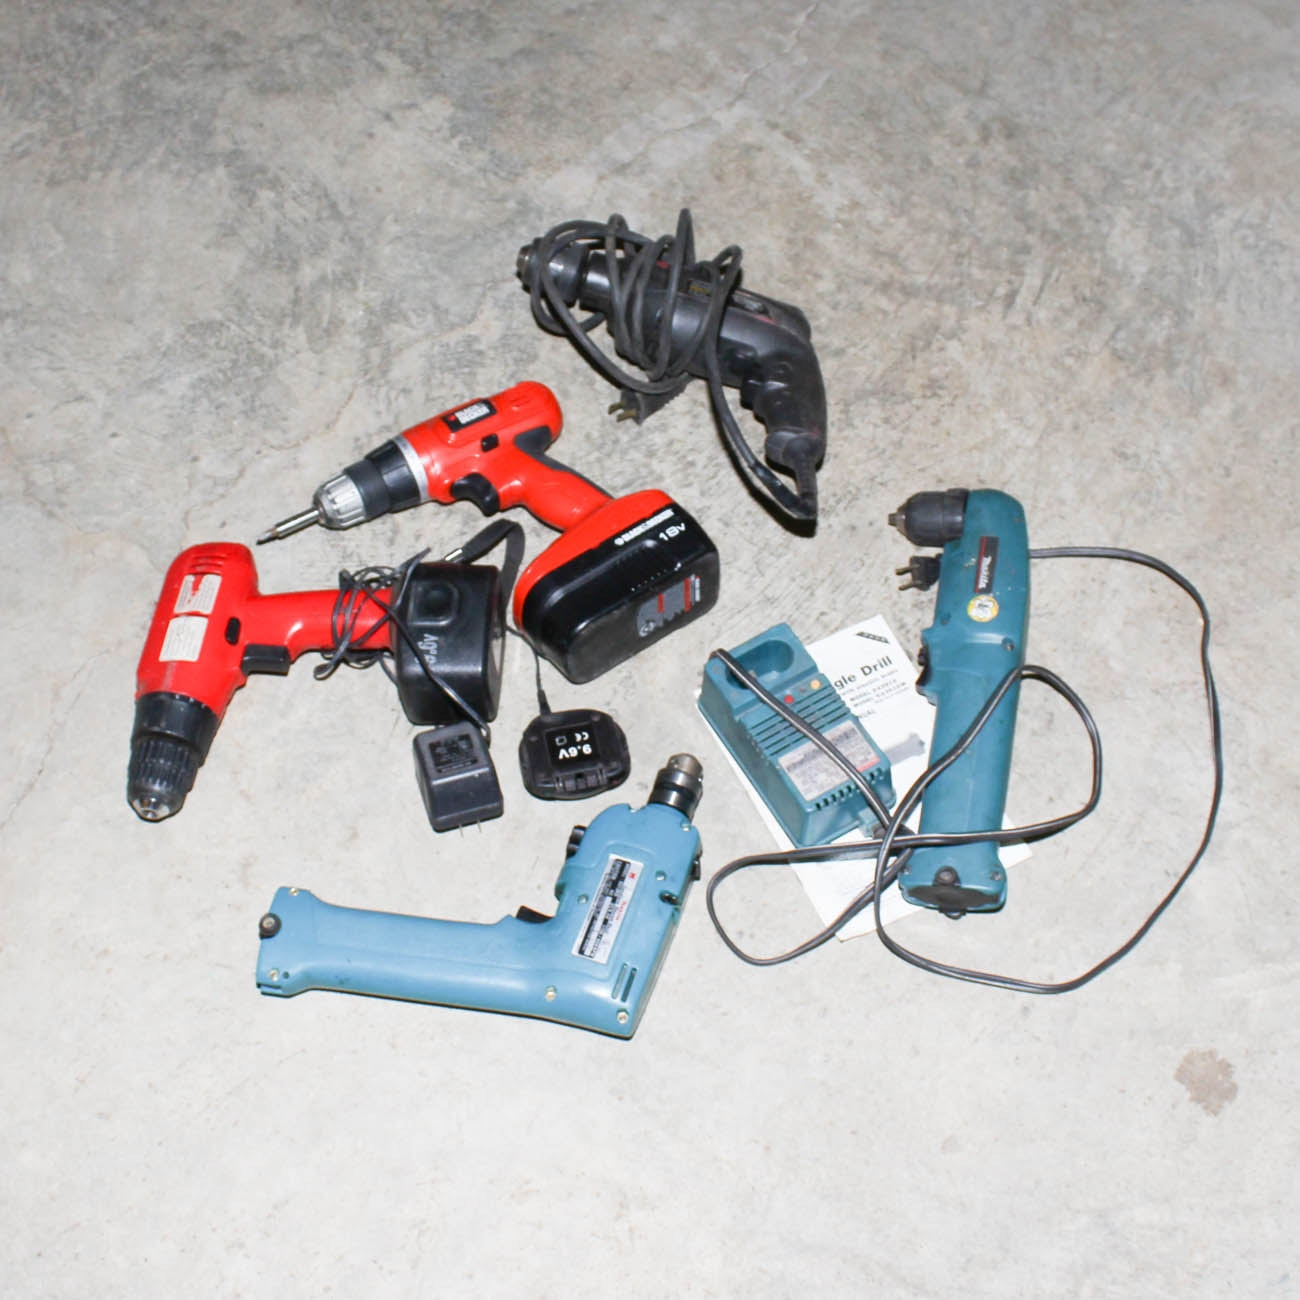 Assorted Drills and Accessories